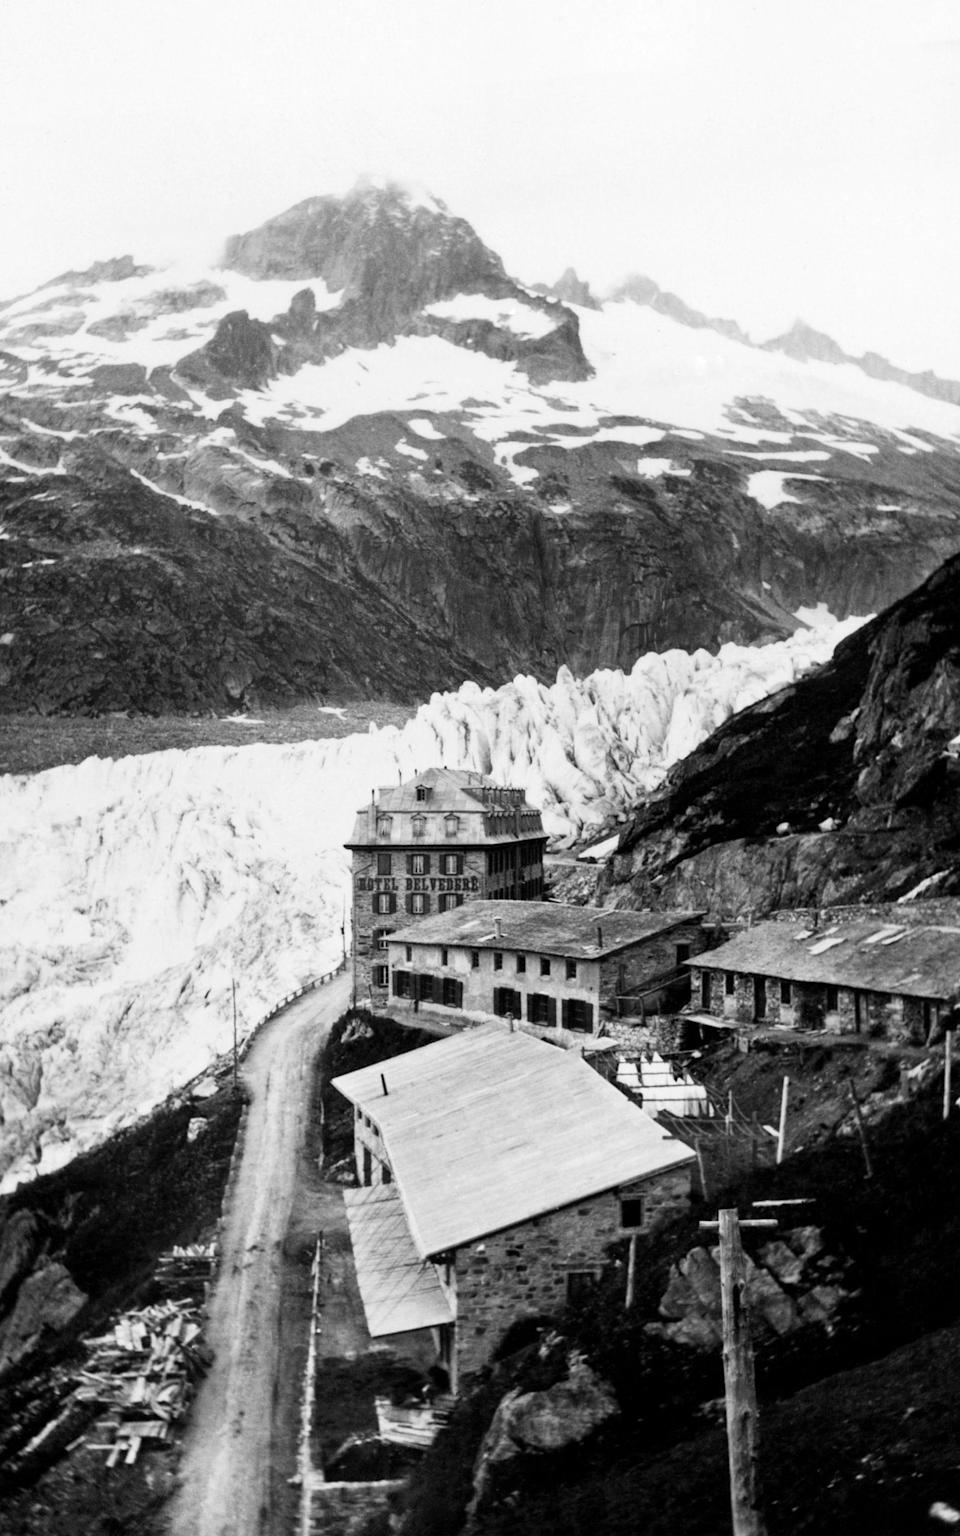 The hotel once had a grandstand view of the Rhone Glacier - Getty